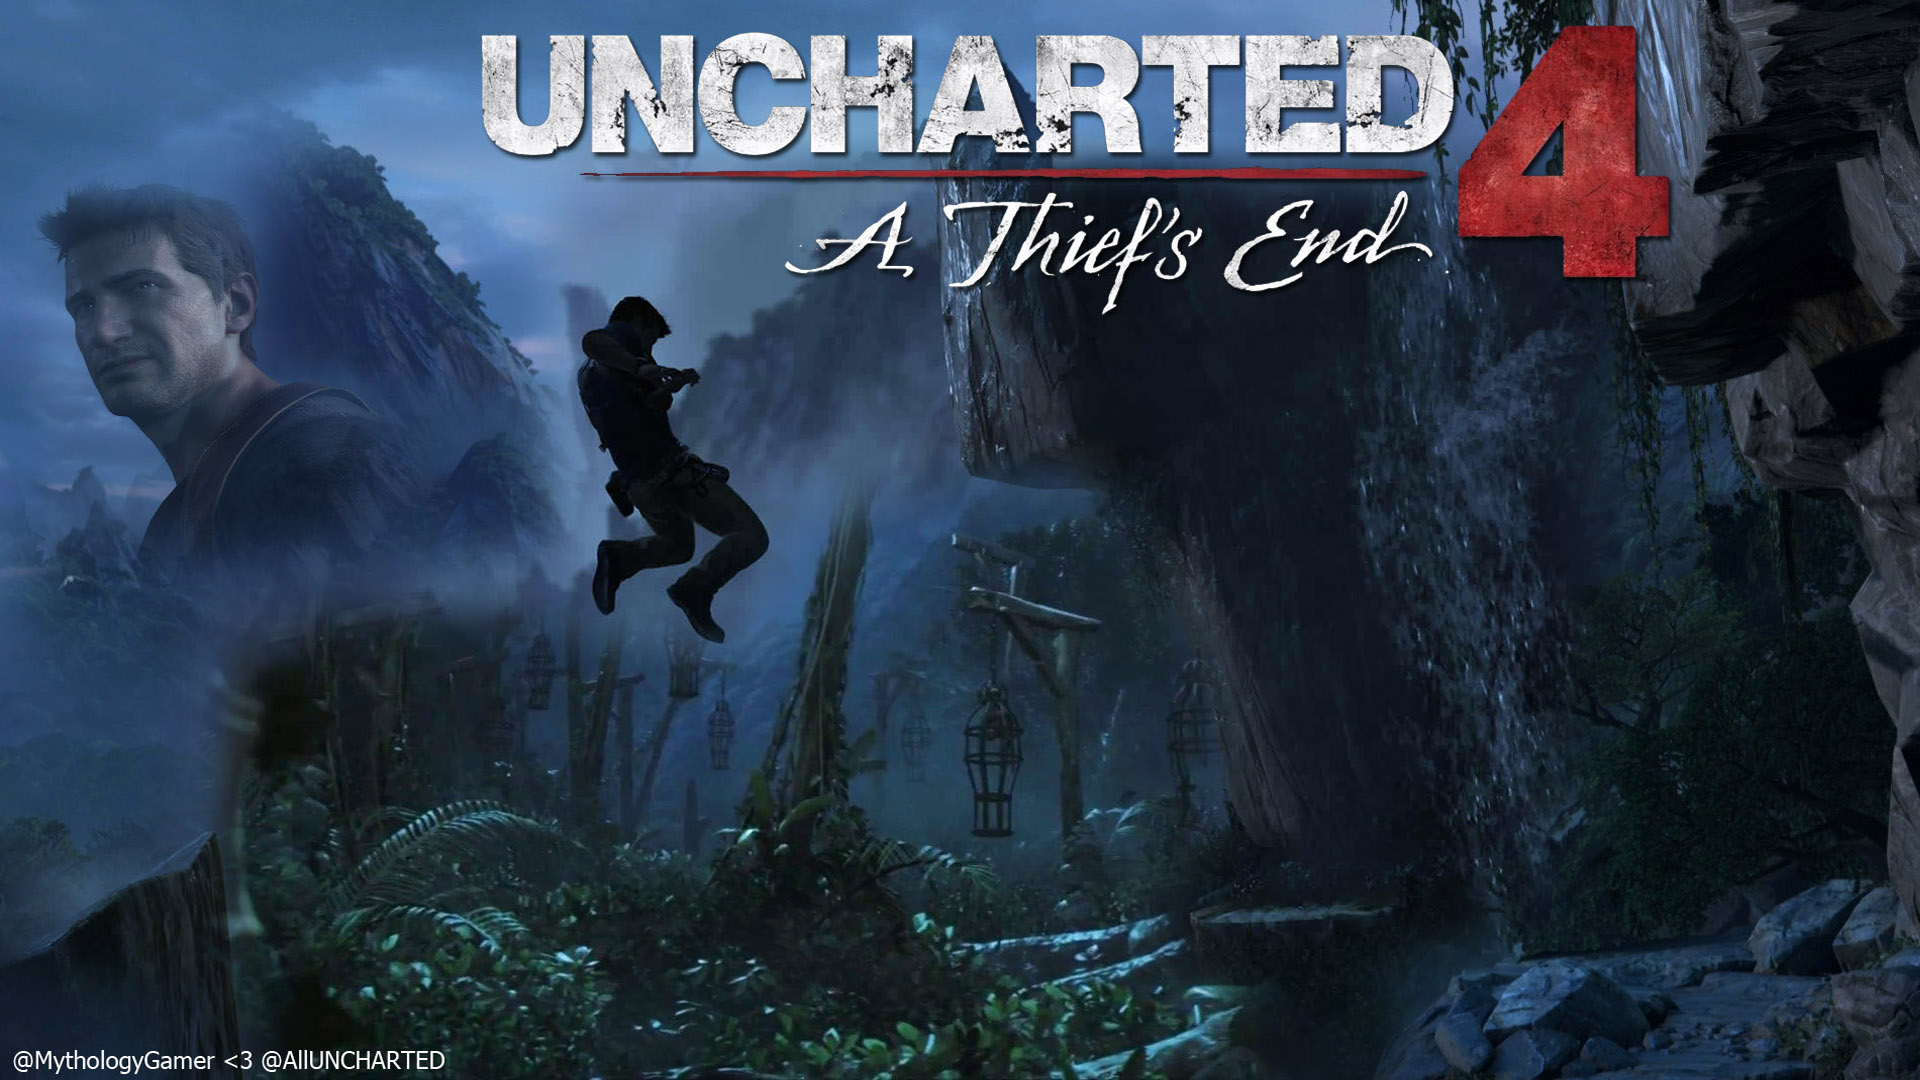 Free Download Uncharted 4 Wallpapers High Resolution And Quality